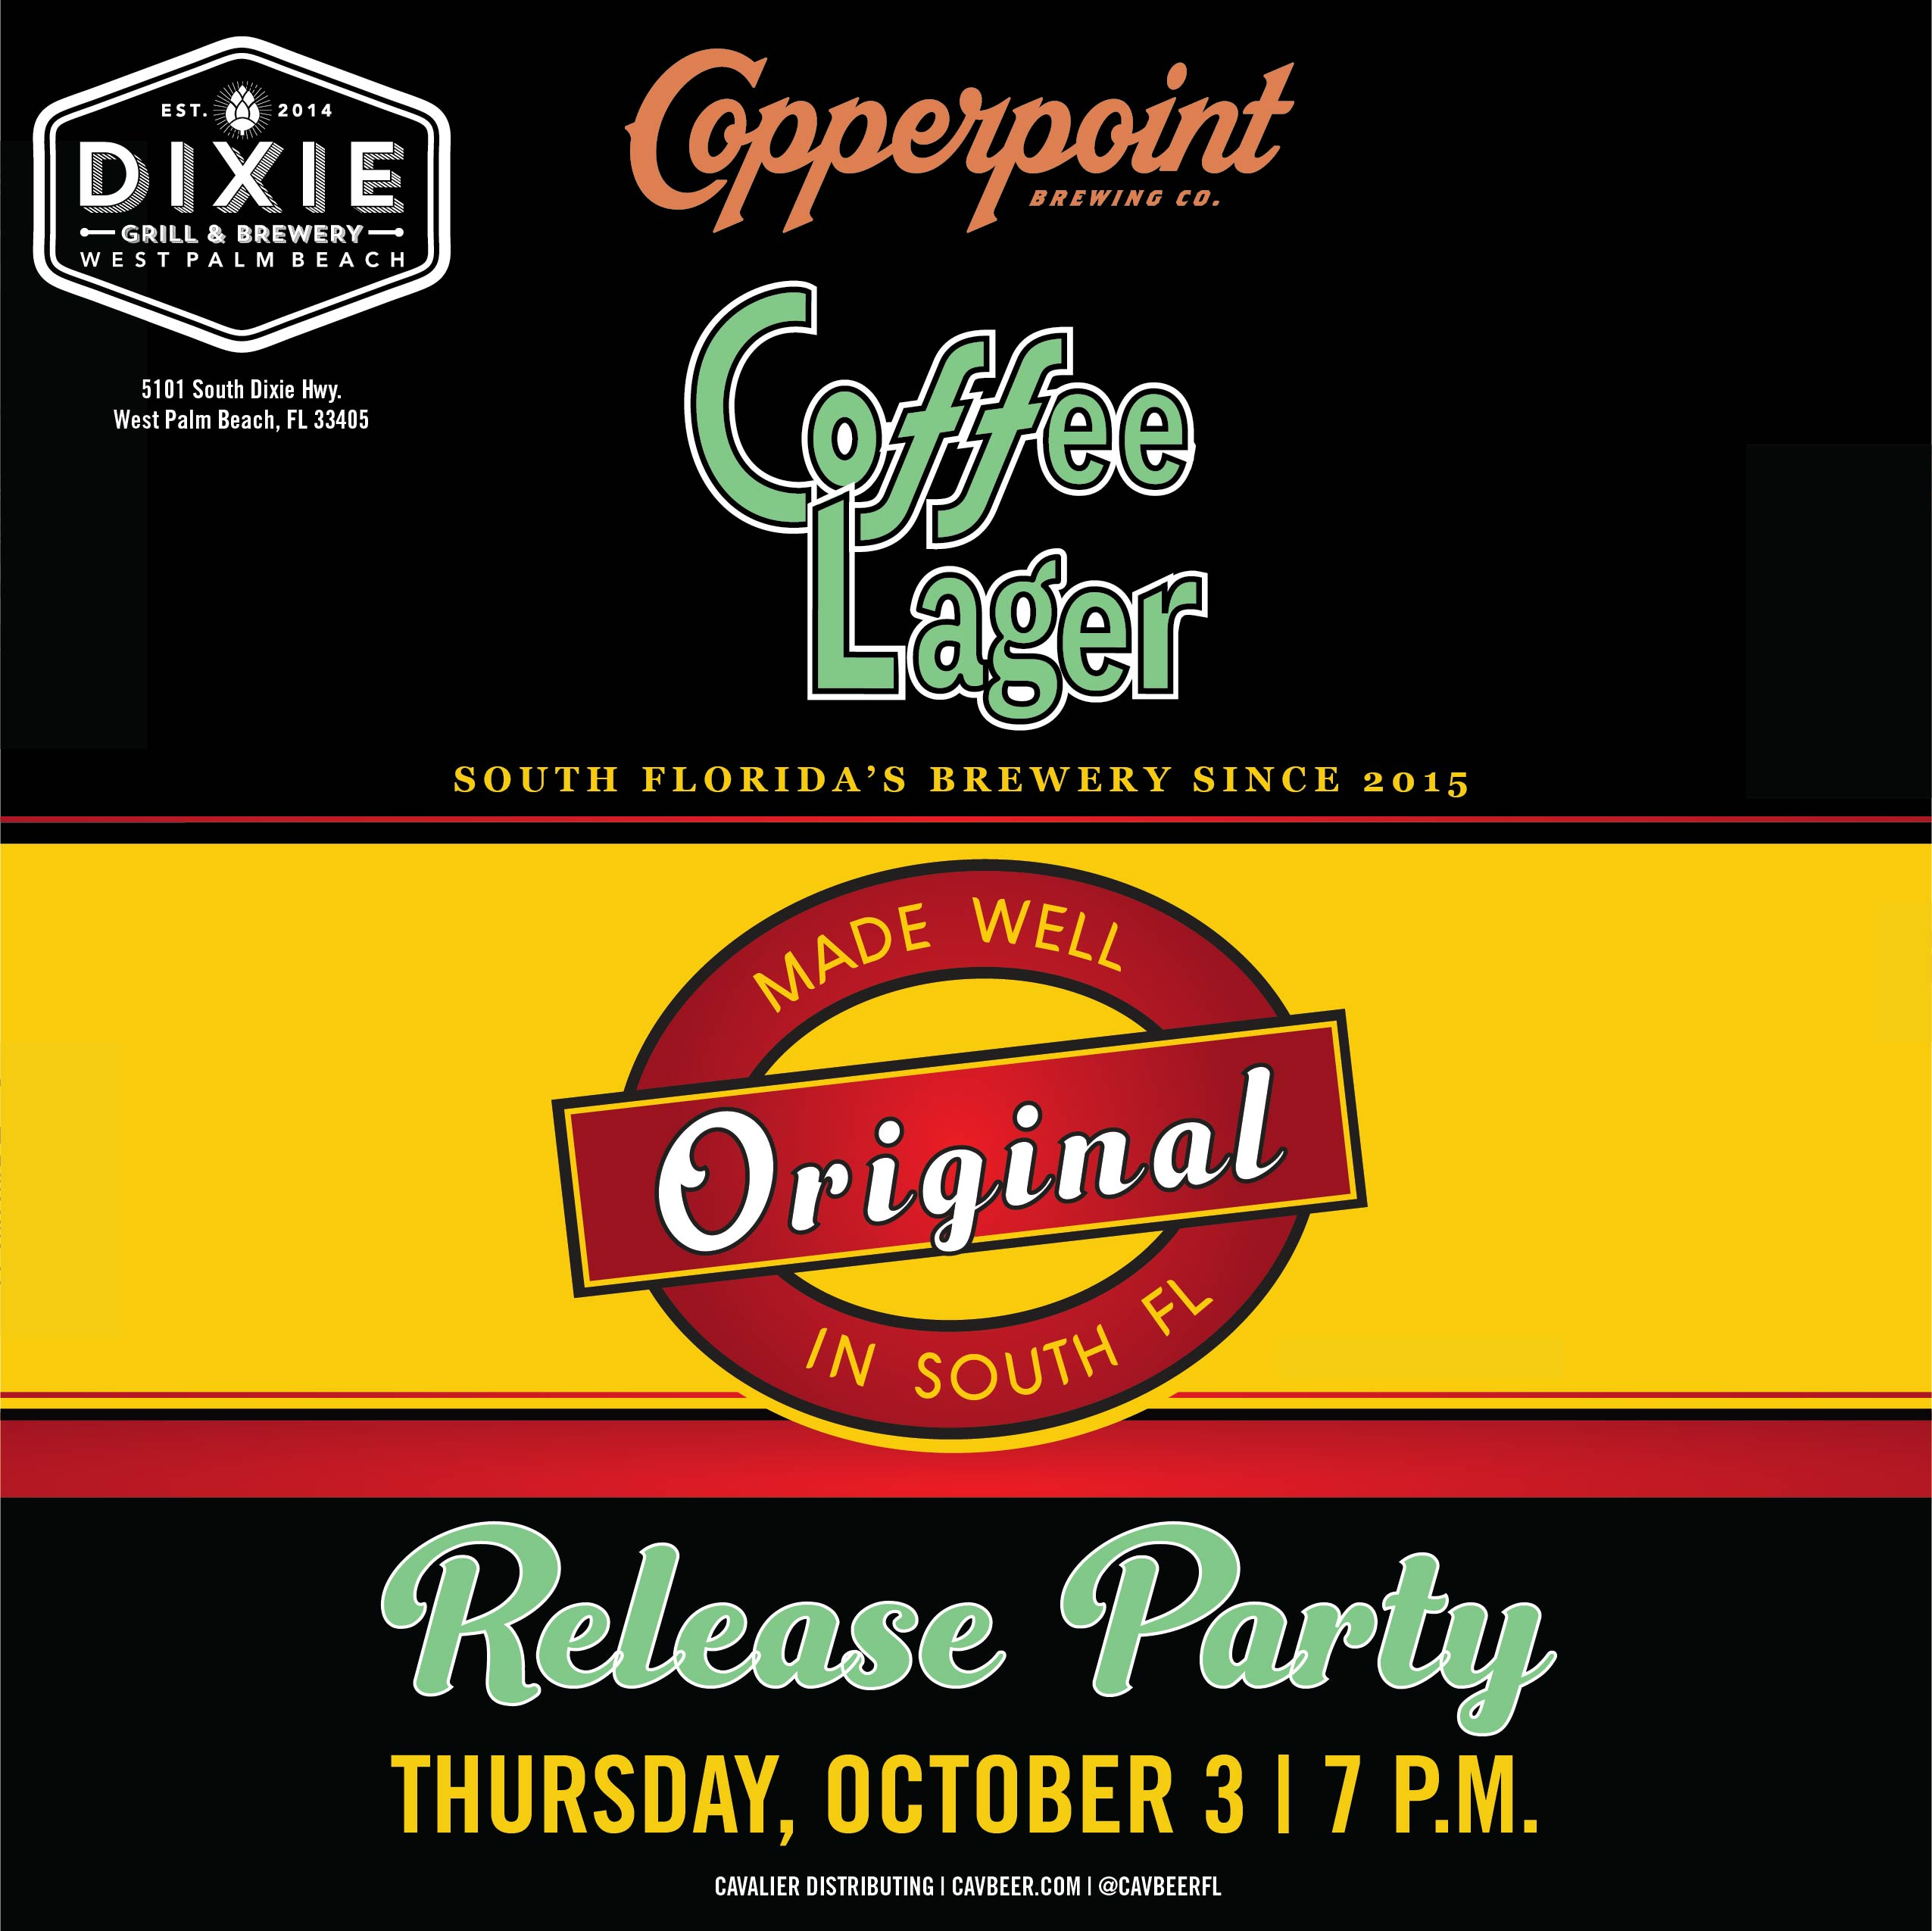 Copperpoint Release Party @ Dixie Grill & Brewery